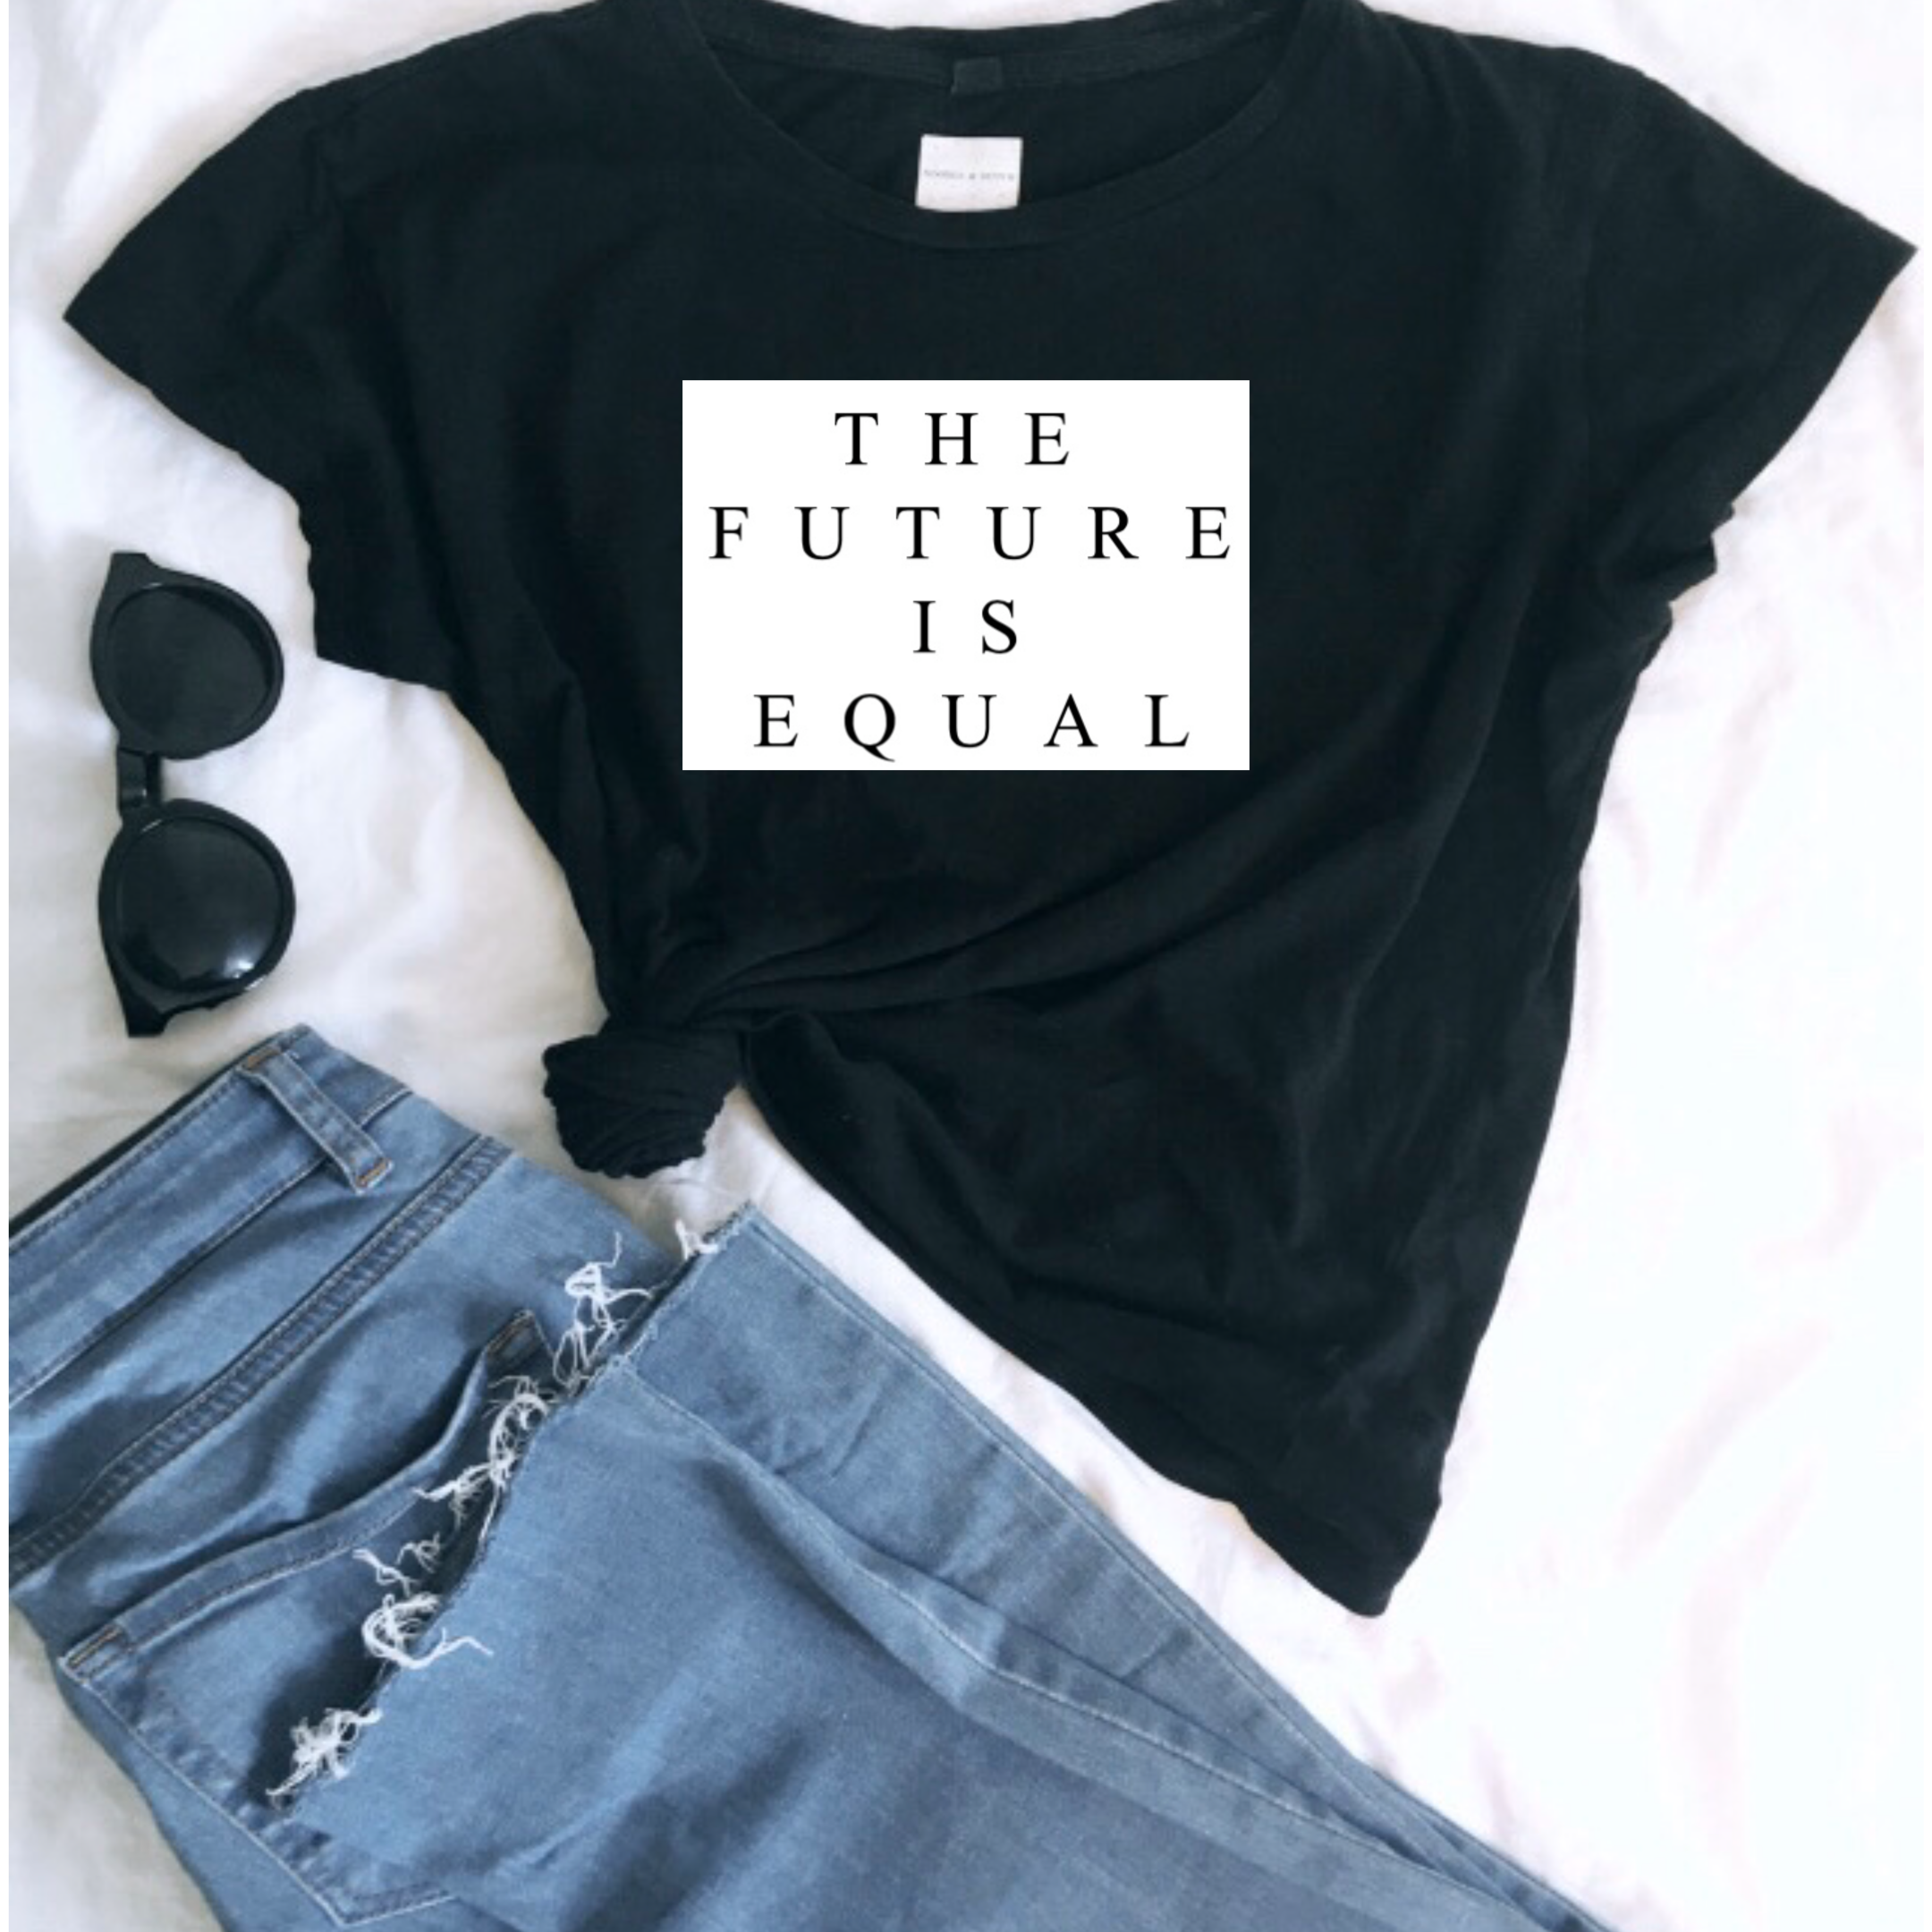 'THE FUTURE IS EQUAL' Ladies Organic Slogan Tee